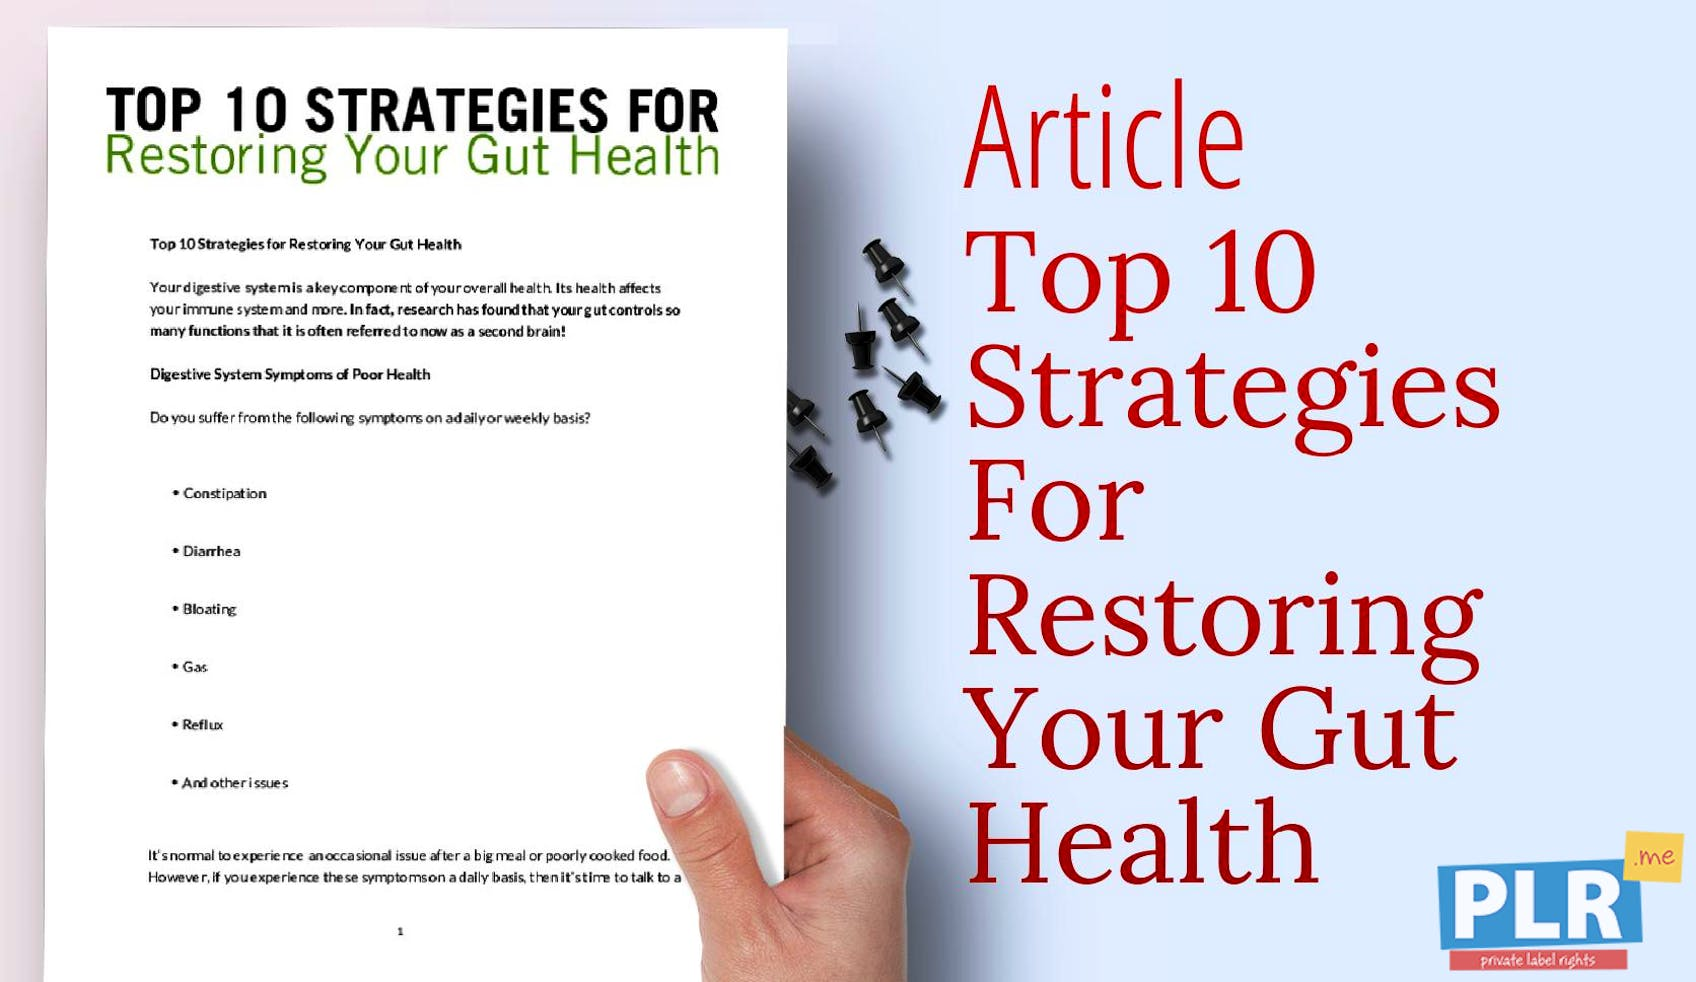 Top 10 Strategies For Restoring Your Gut Health